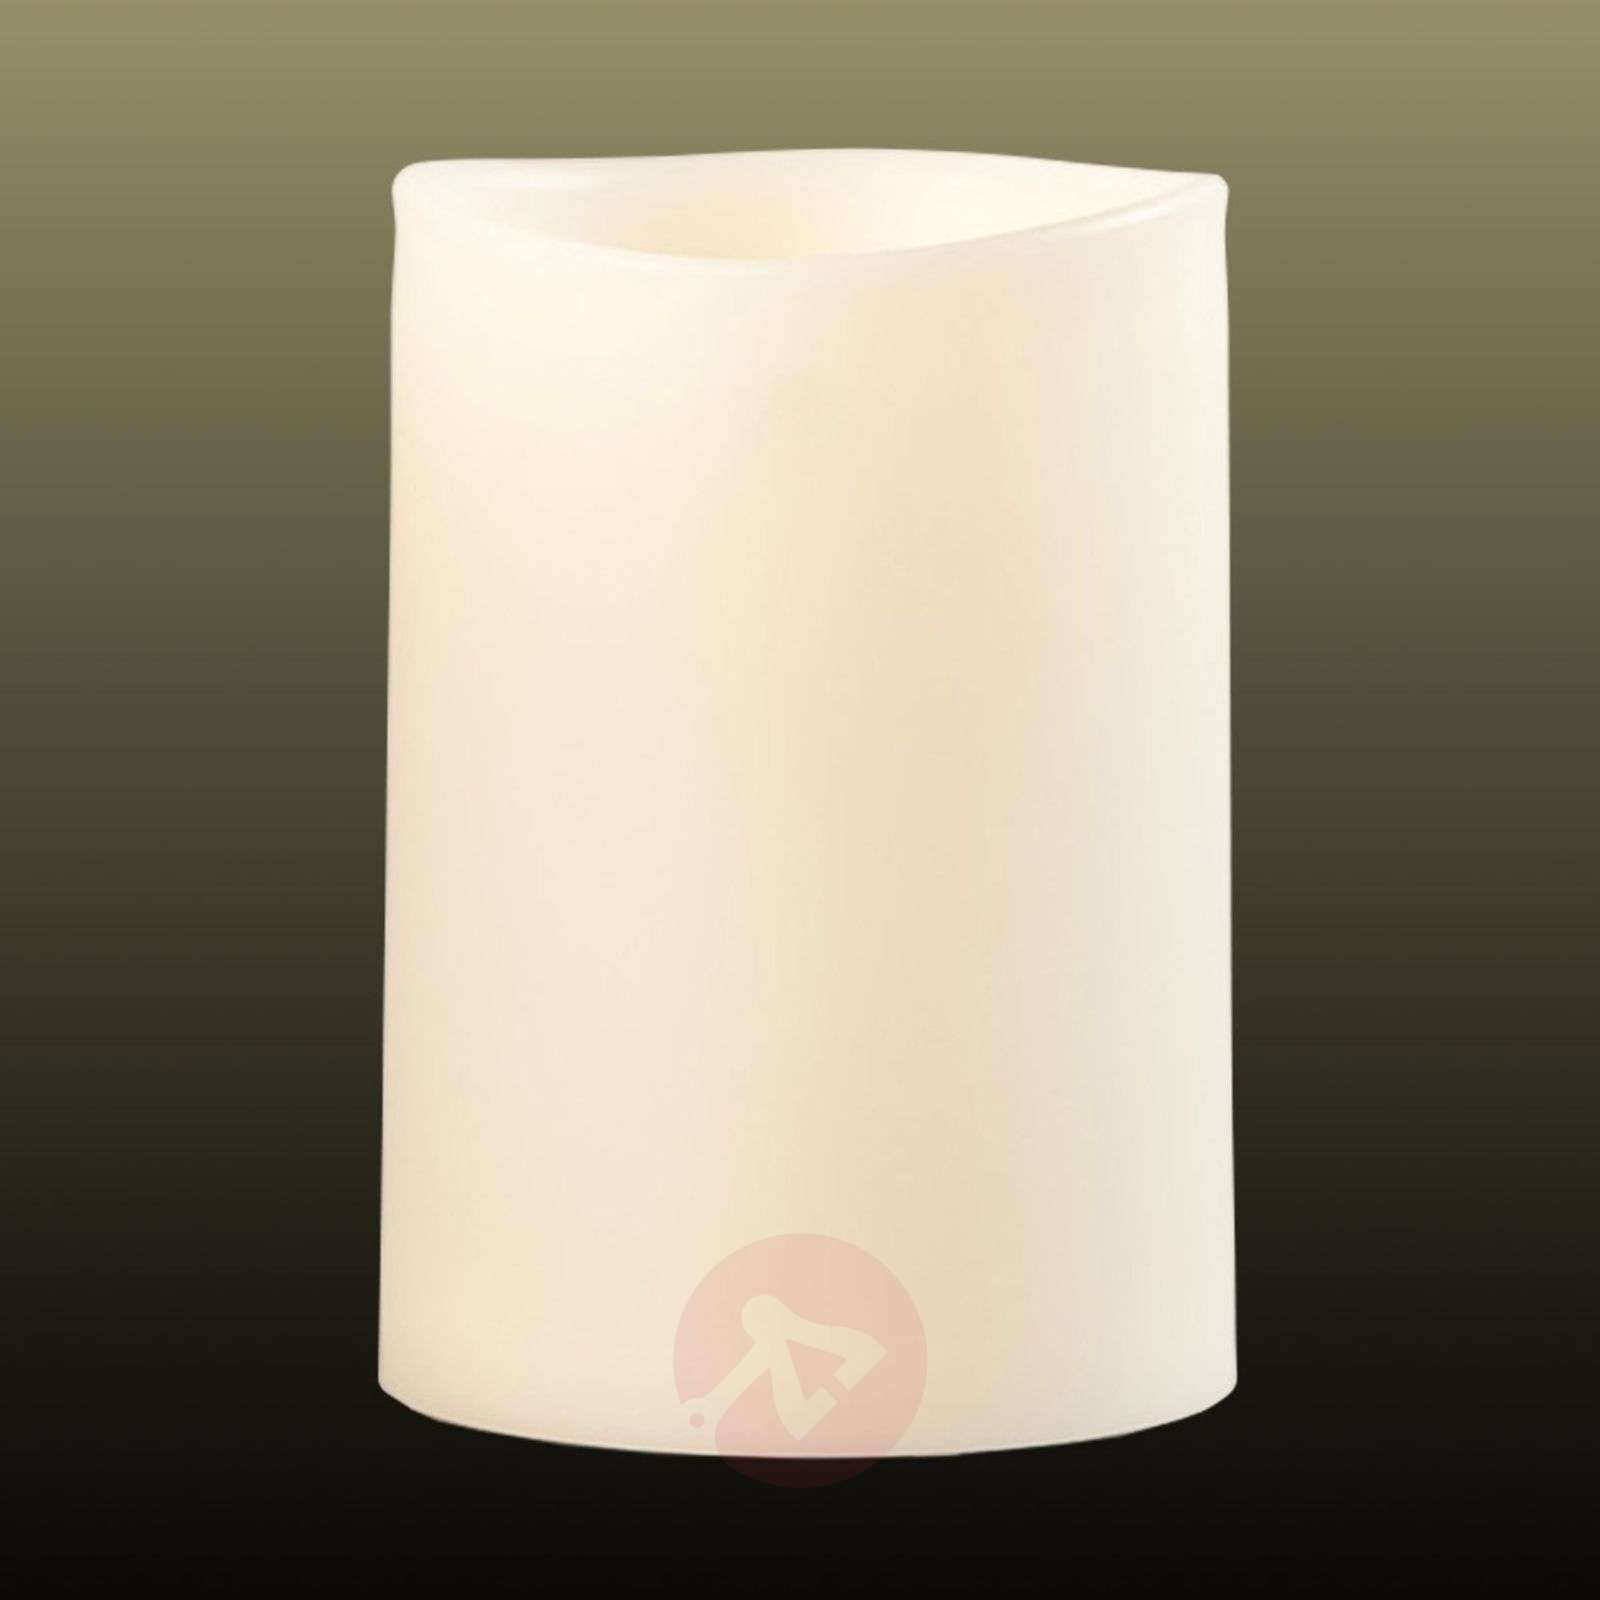 Lampada decorativa a LED Outdoor Candle 12,5 cm-8507570-01